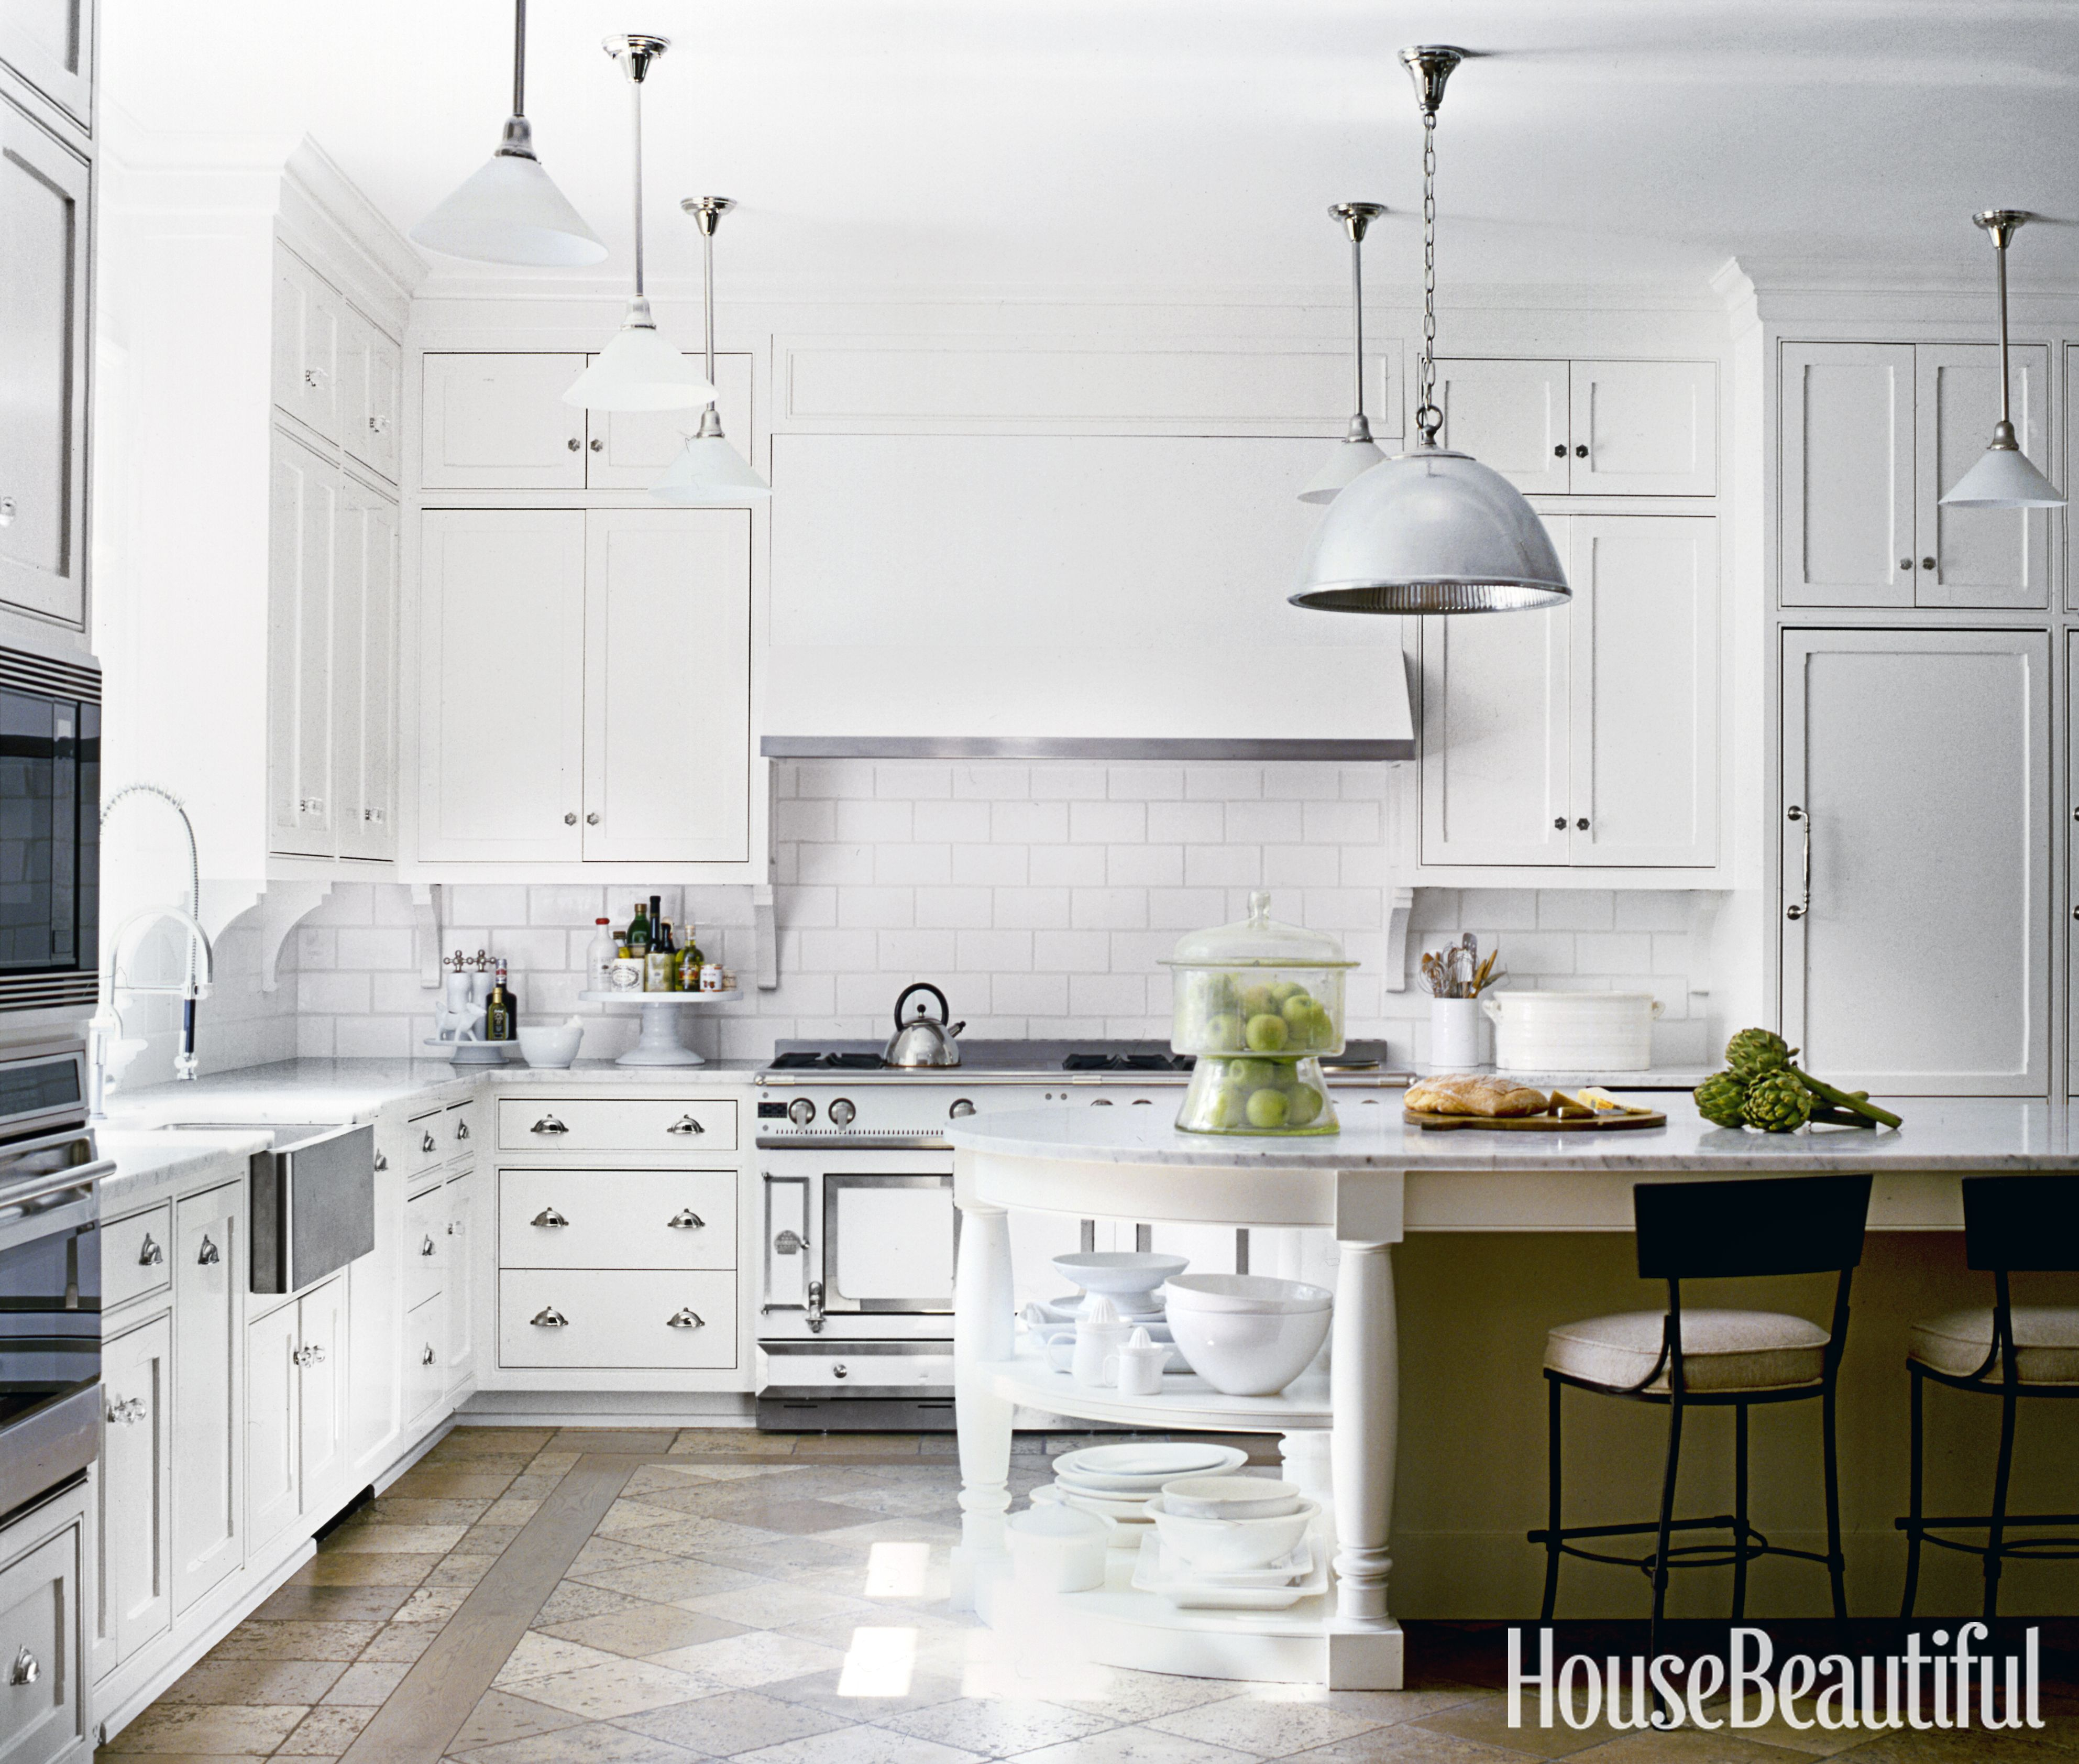 Cheap Kitchen Appliances How To Make Your Kitchen Look Expensive Cheap Kitchen Updates